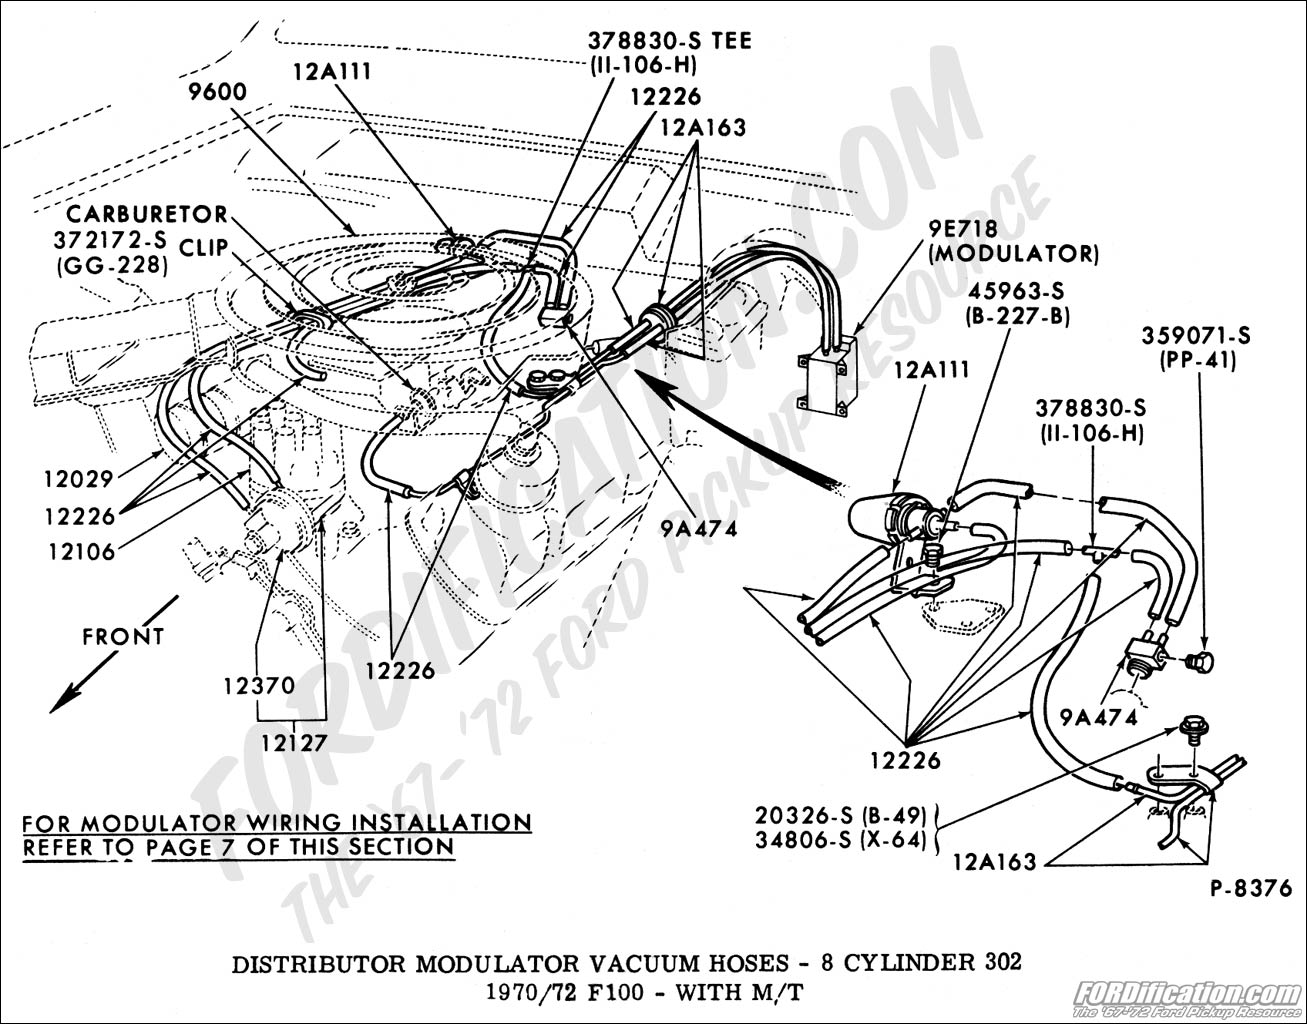 tbi ignition coil wiring diagram tbi discover your wiring 1991 chevy 350 pickup coil location 89 chevy 454 wiring diagram likewise chevrolet wire harness clips